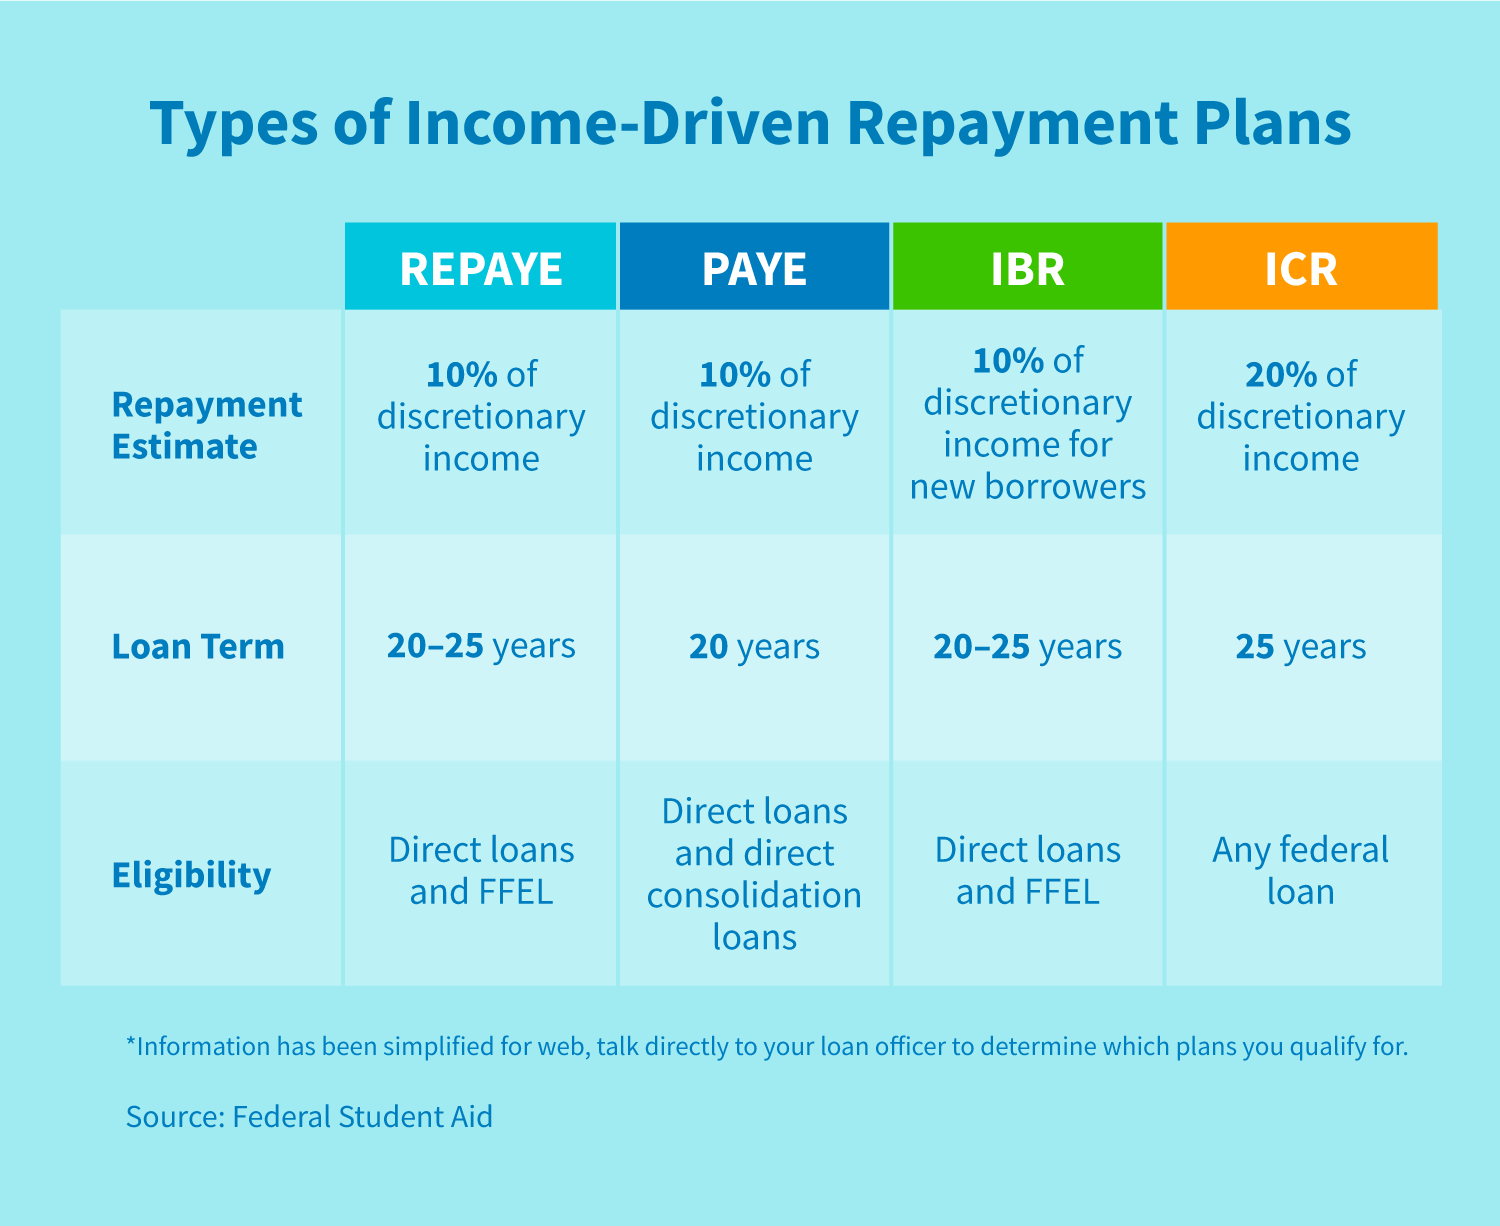 A table of the types of income-driven repayment plans: REPAYE, PAYE, IBR, ICR